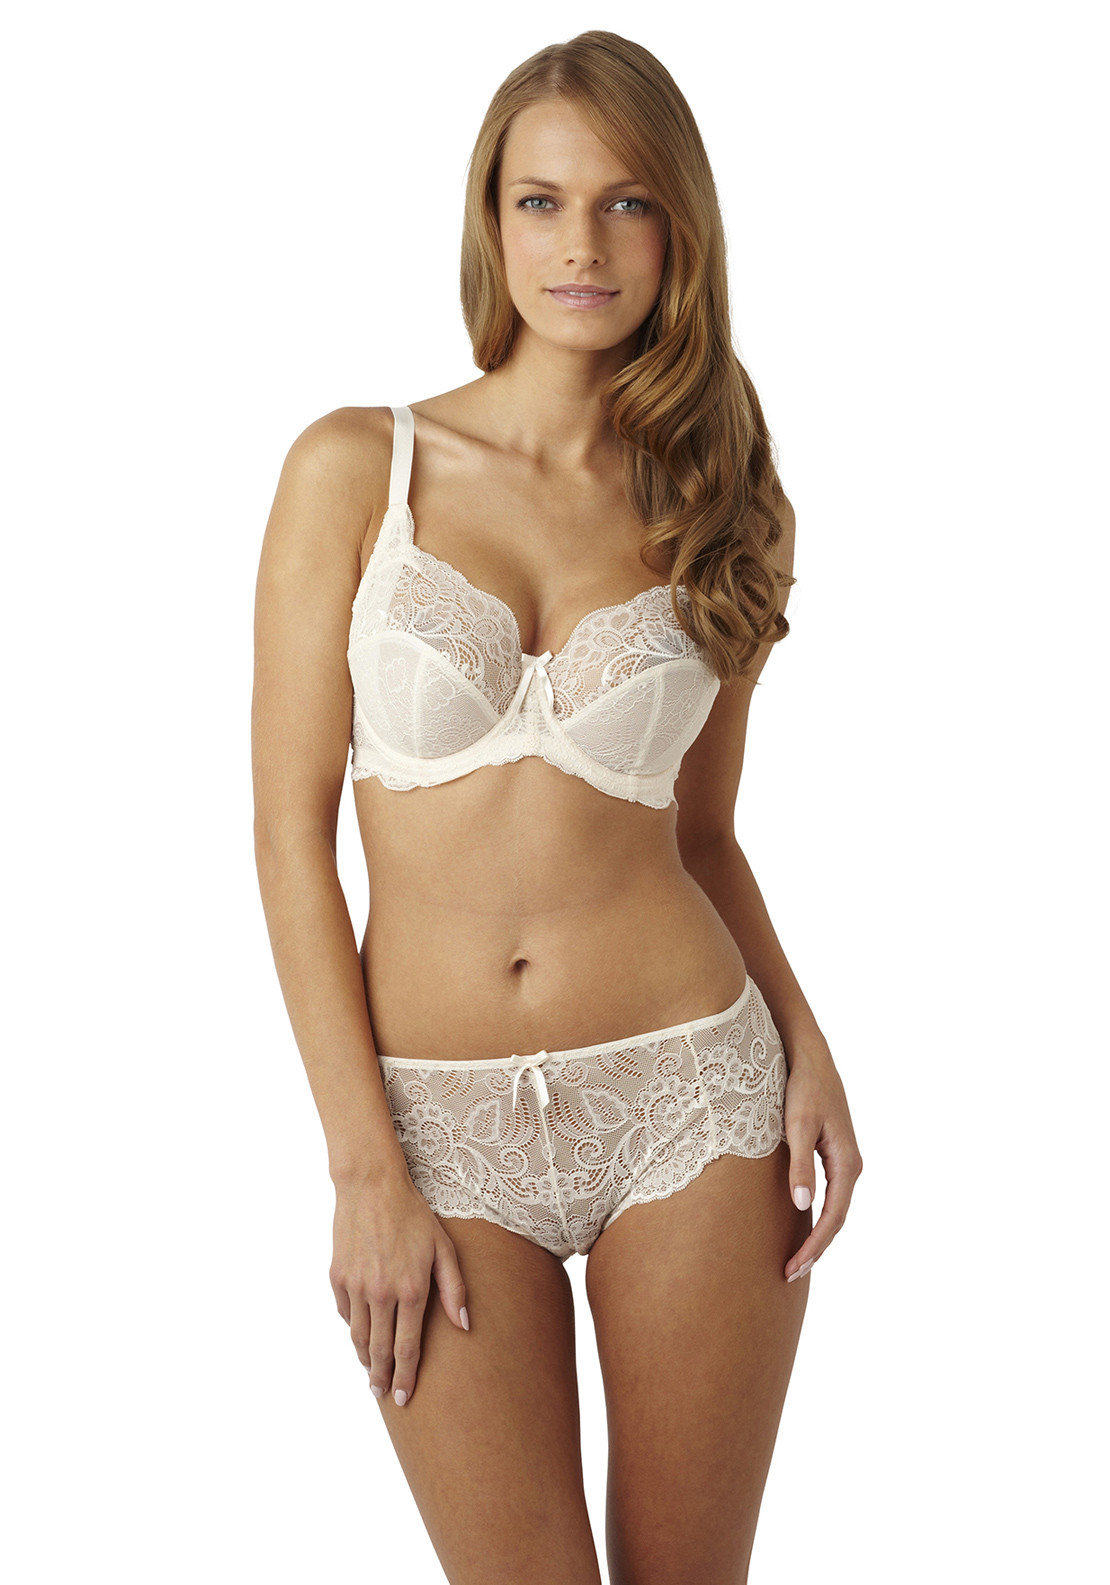 Panache Andorra Lace Shorty Briefs, Pearl